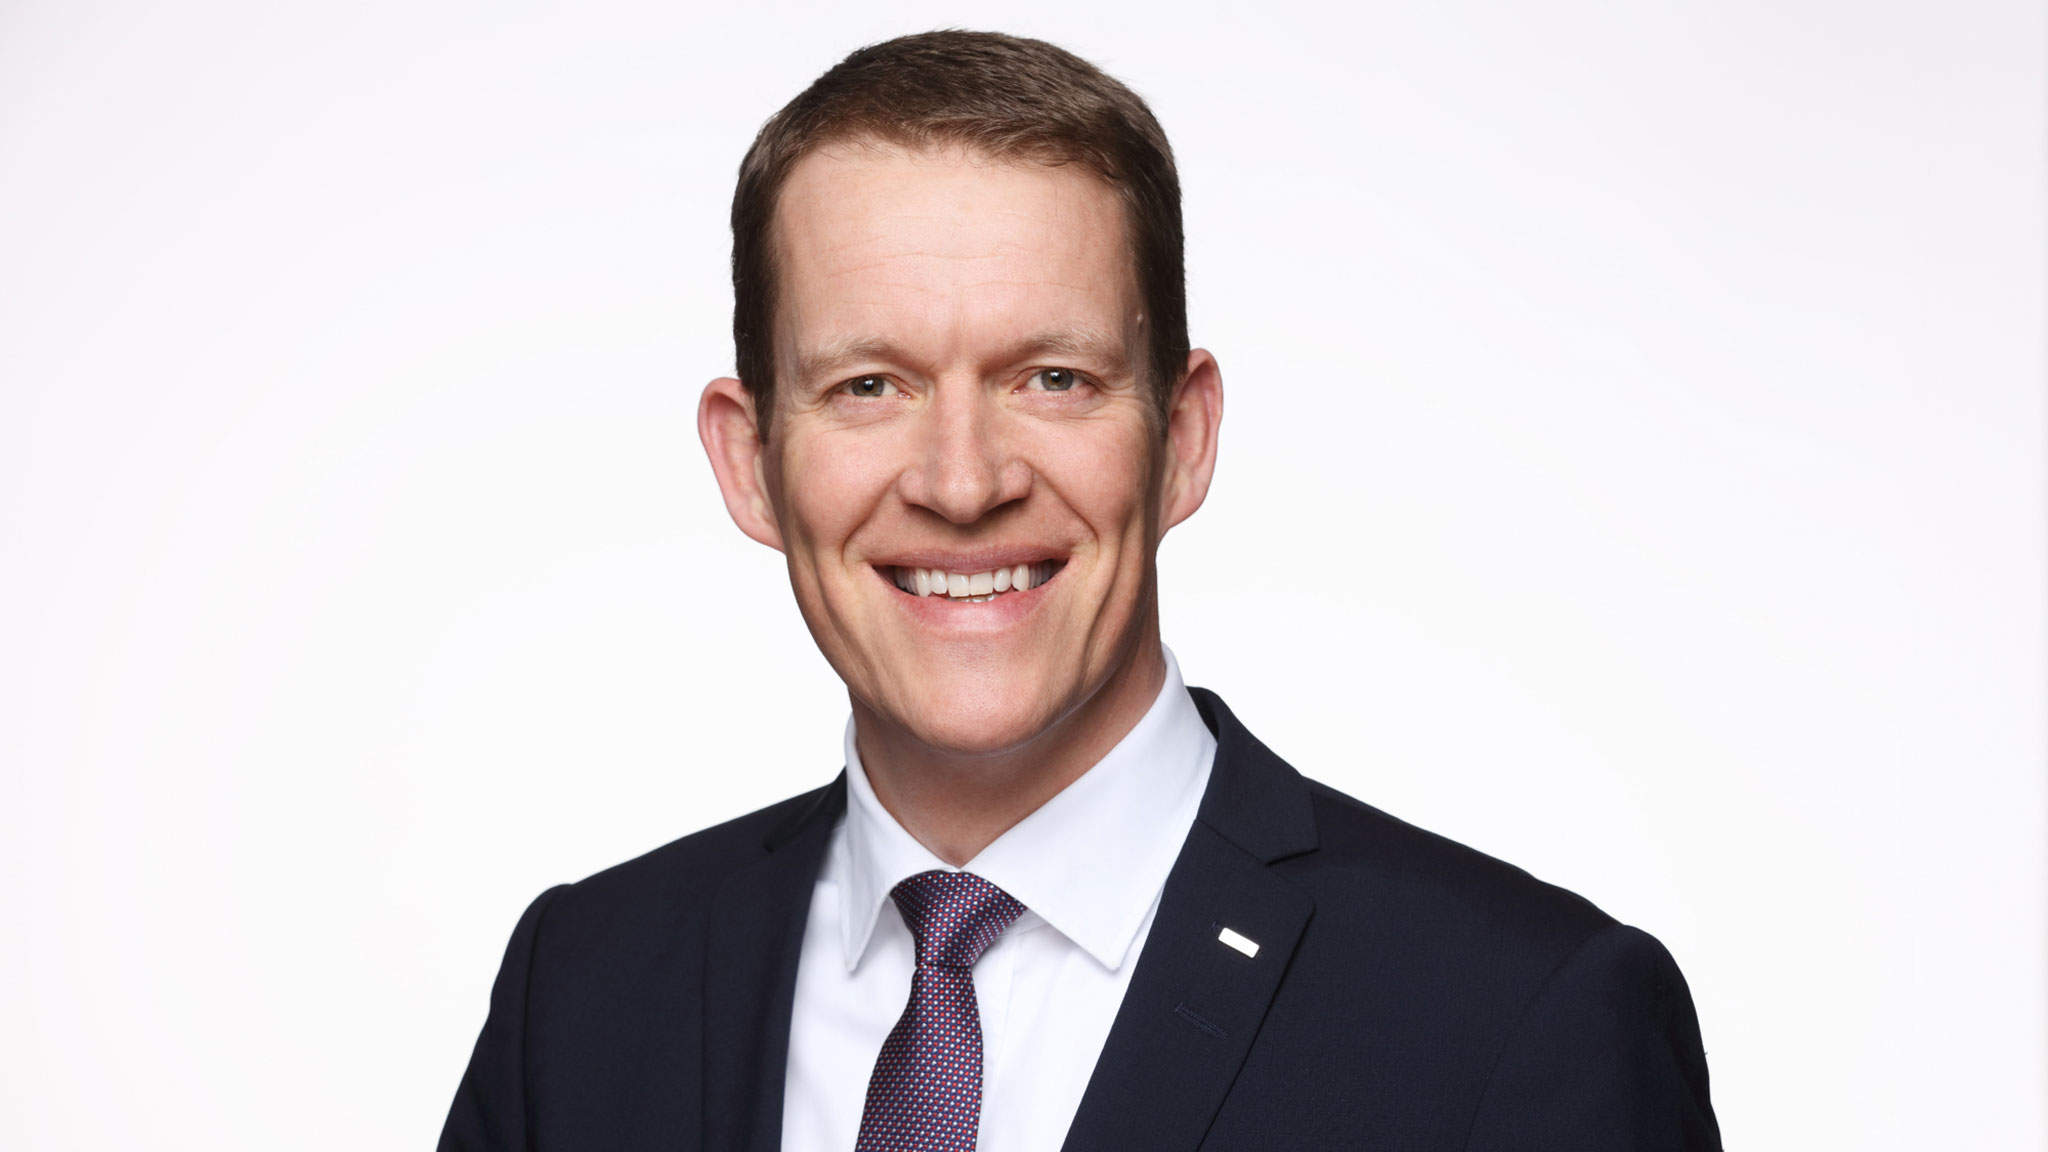 On January 1, Burkhard Eling became Chief Executive Officer (CEO) and Spokesperson of the Executive Board of logistics provider DACHSER.